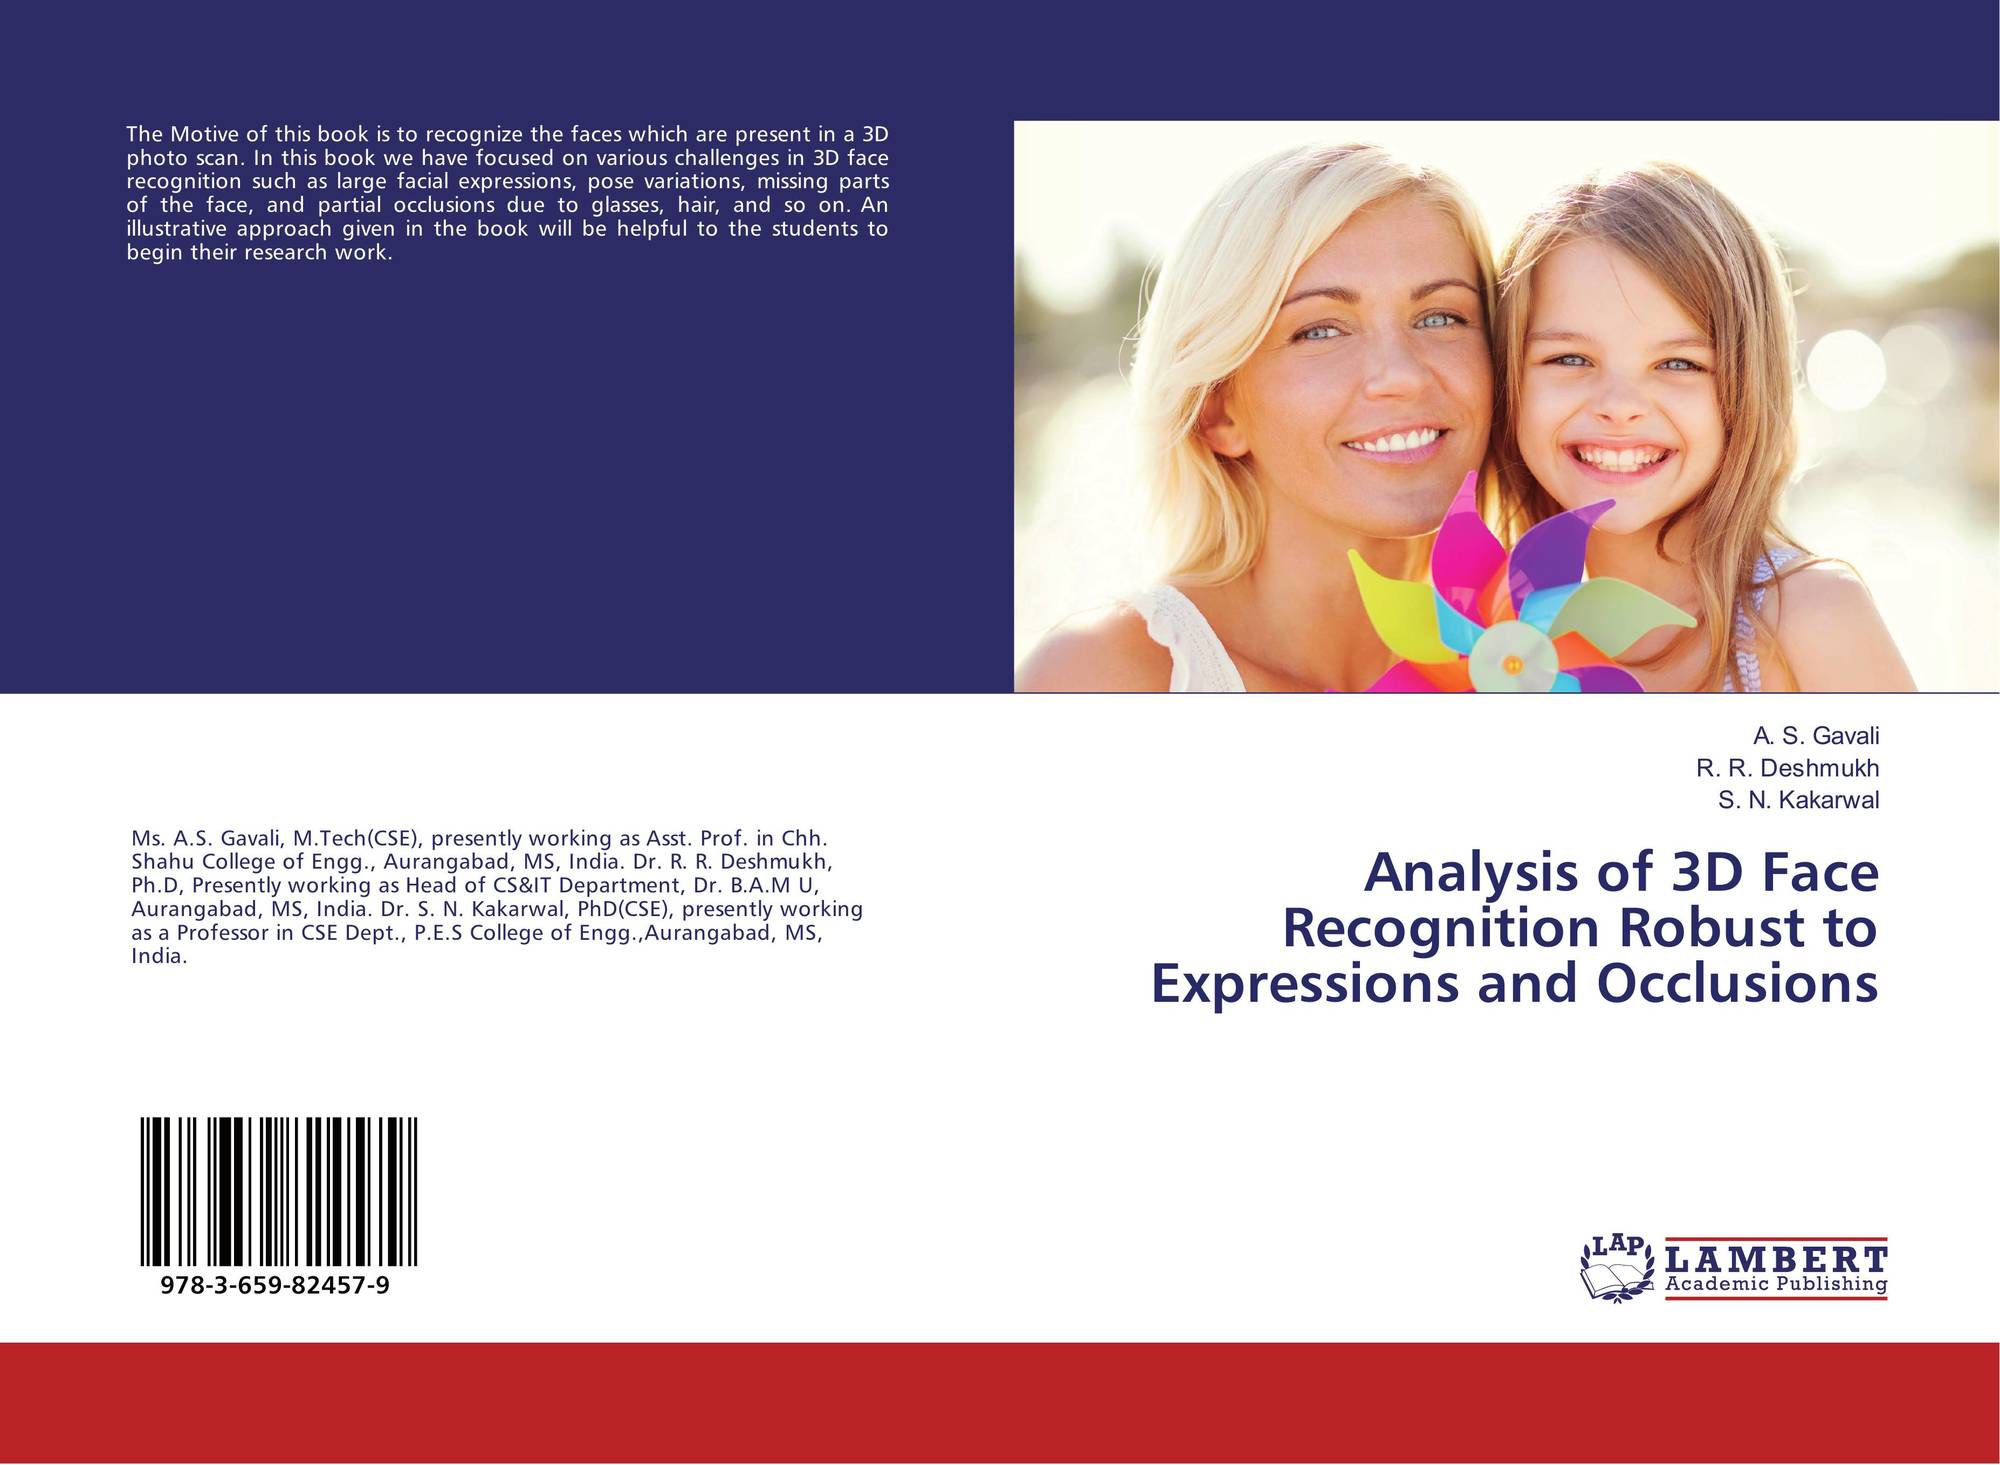 Analysis of 3D Face Recognition Robust to Expressions and